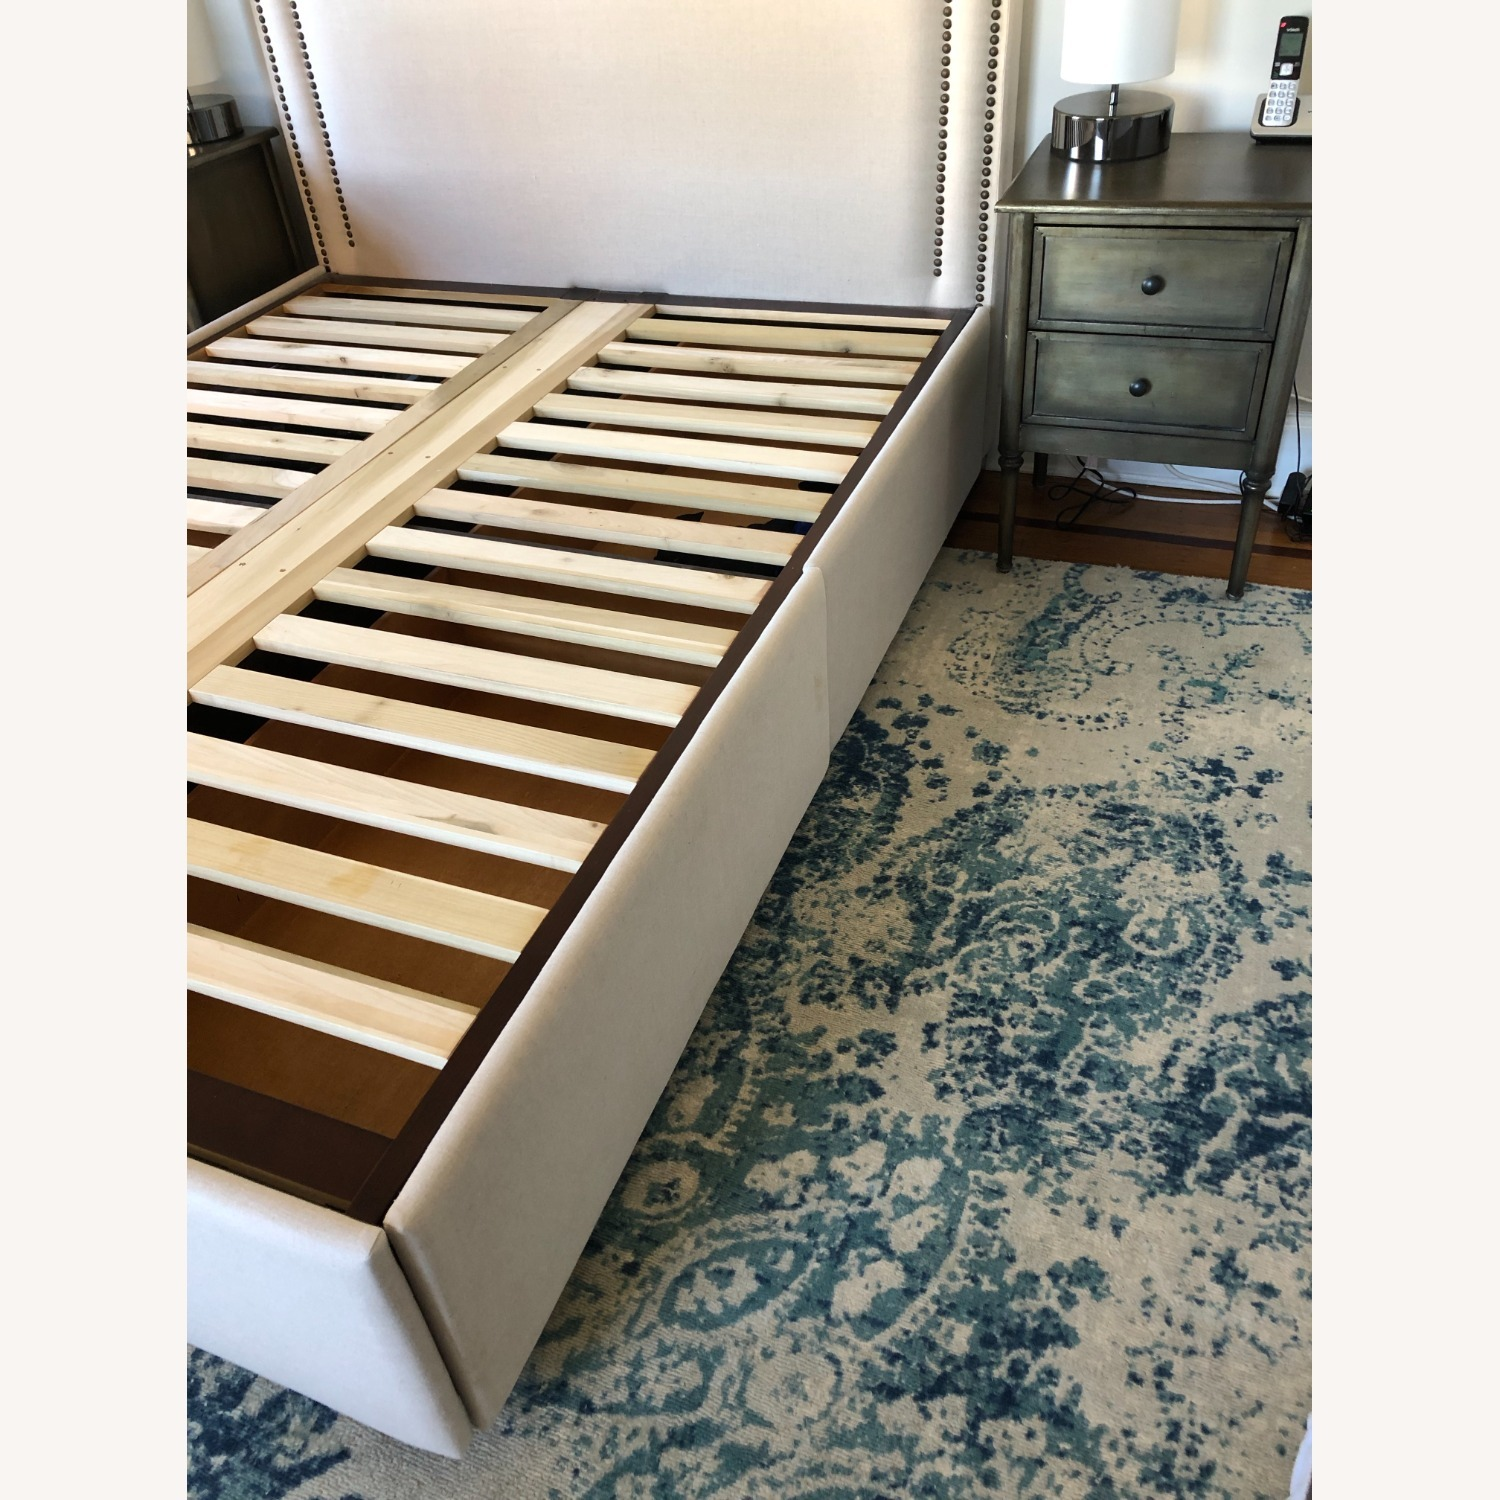 Pottery Barn Upholstered Queen Bed with Storage - image-3